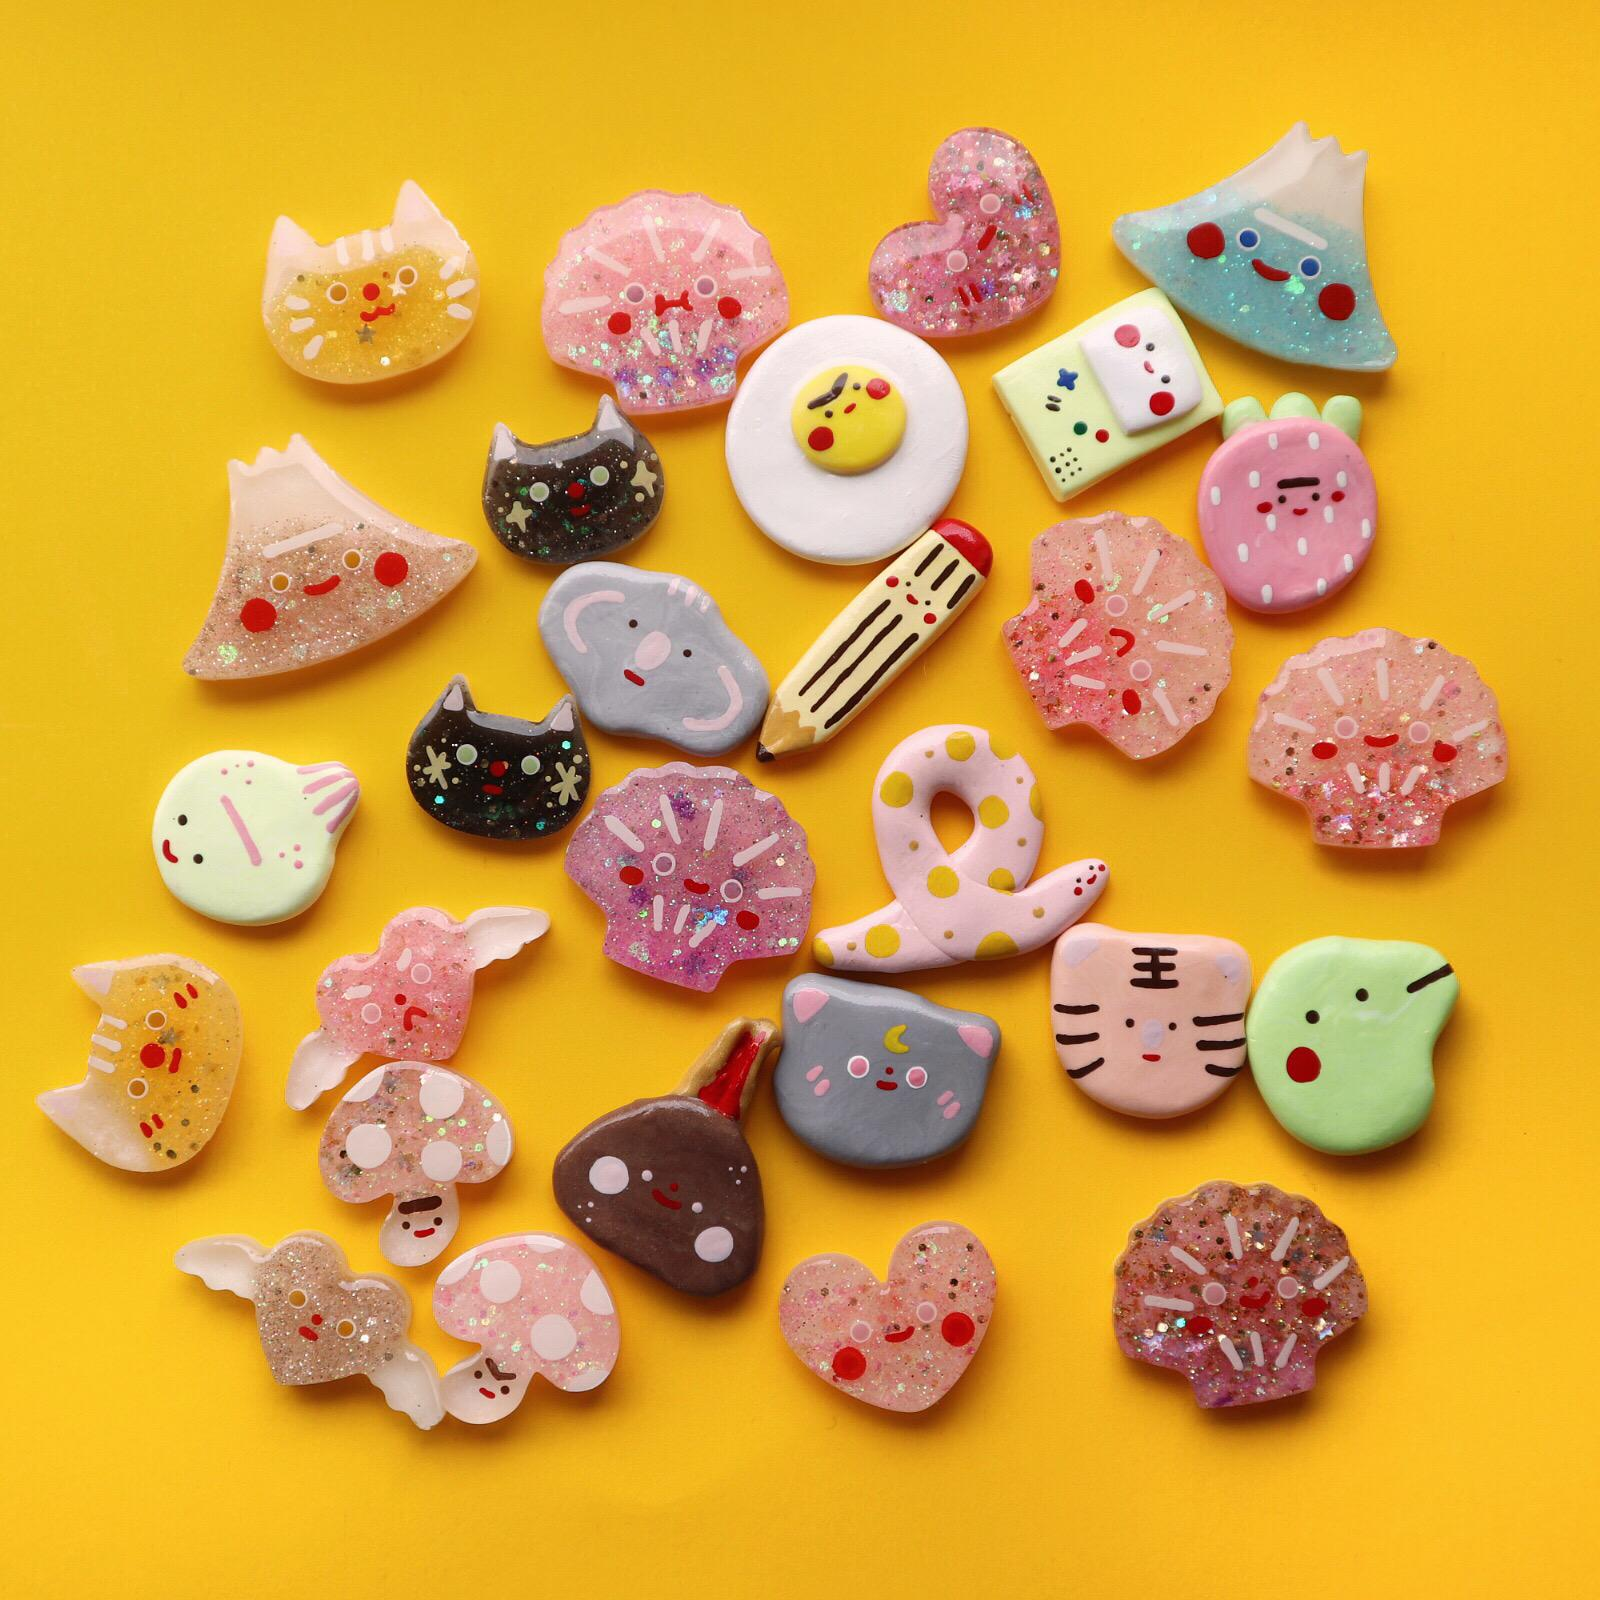 Handmade Clay and Resin Pins